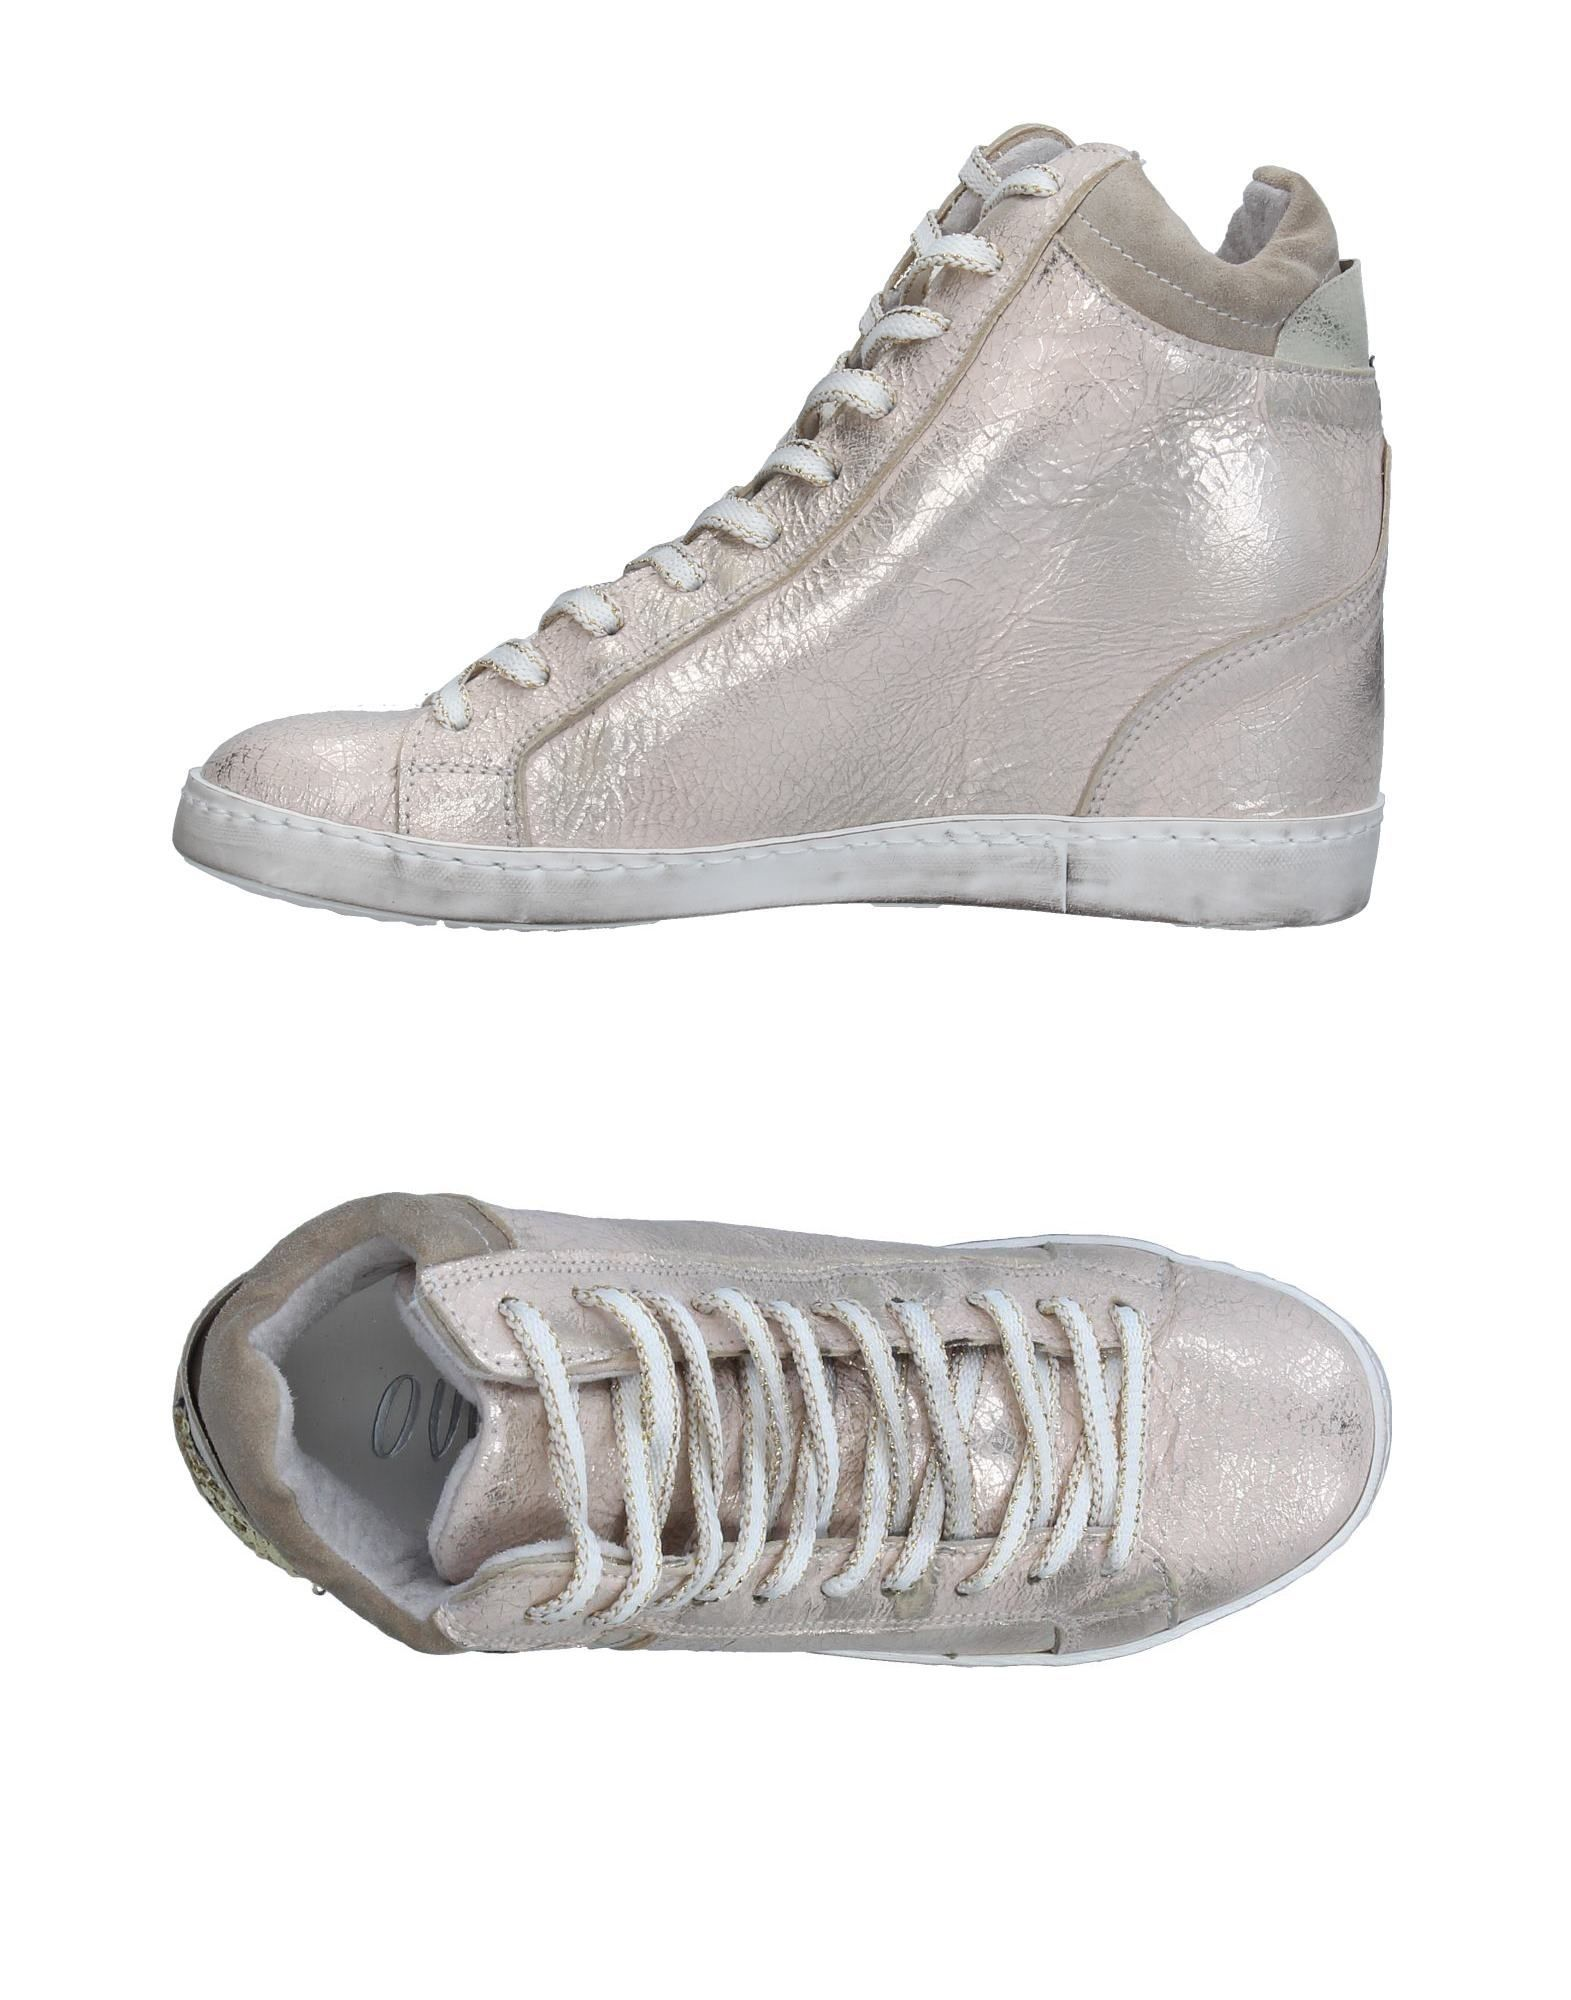 Sneakers Ovye By Cristina Lucchi Femme - Sneakers Ovye By Cristina Lucchi sur